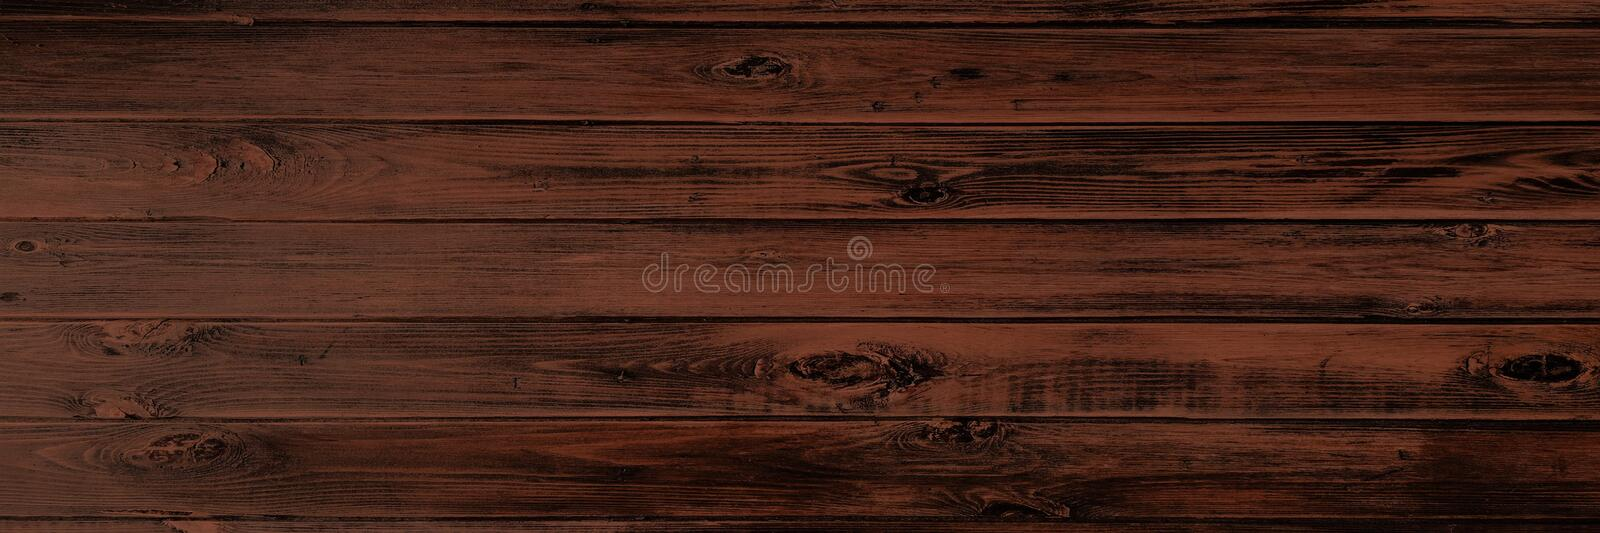 Wood texture background, brown wooden planks. Grunge washed wood table pattern top view. stock images